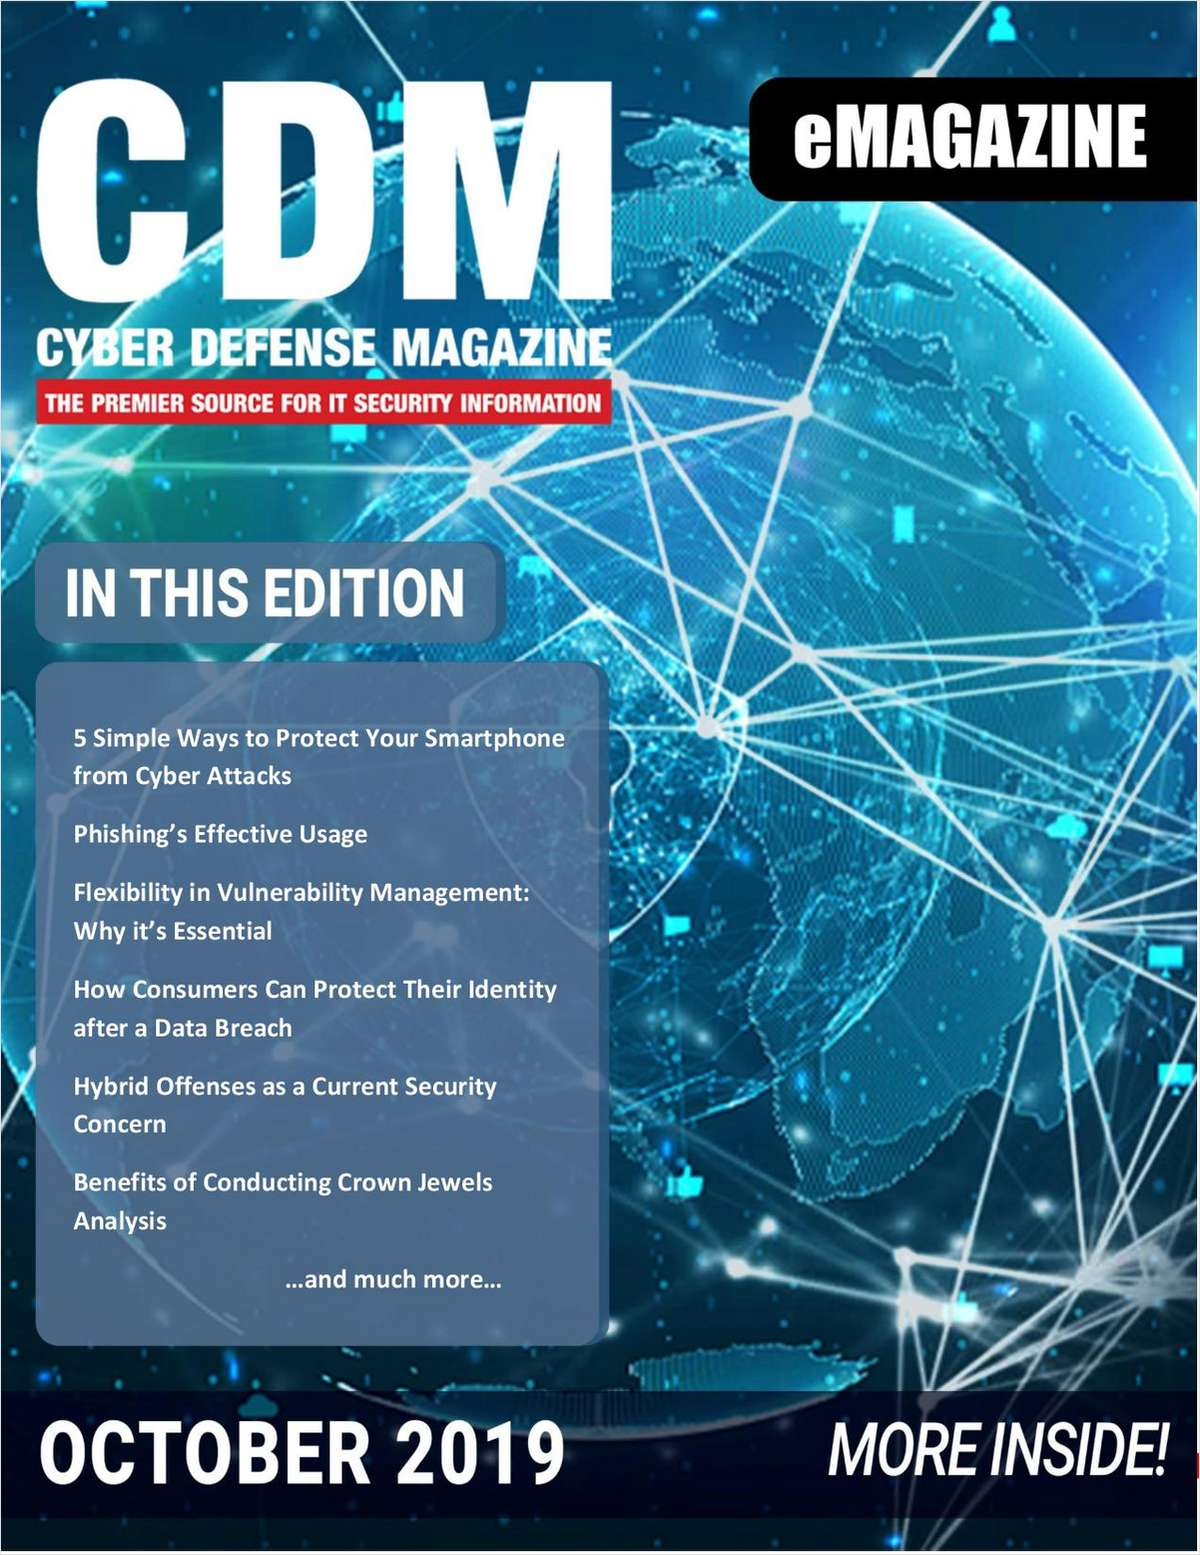 Cyber Defense eMagazine - October 2019 Edition